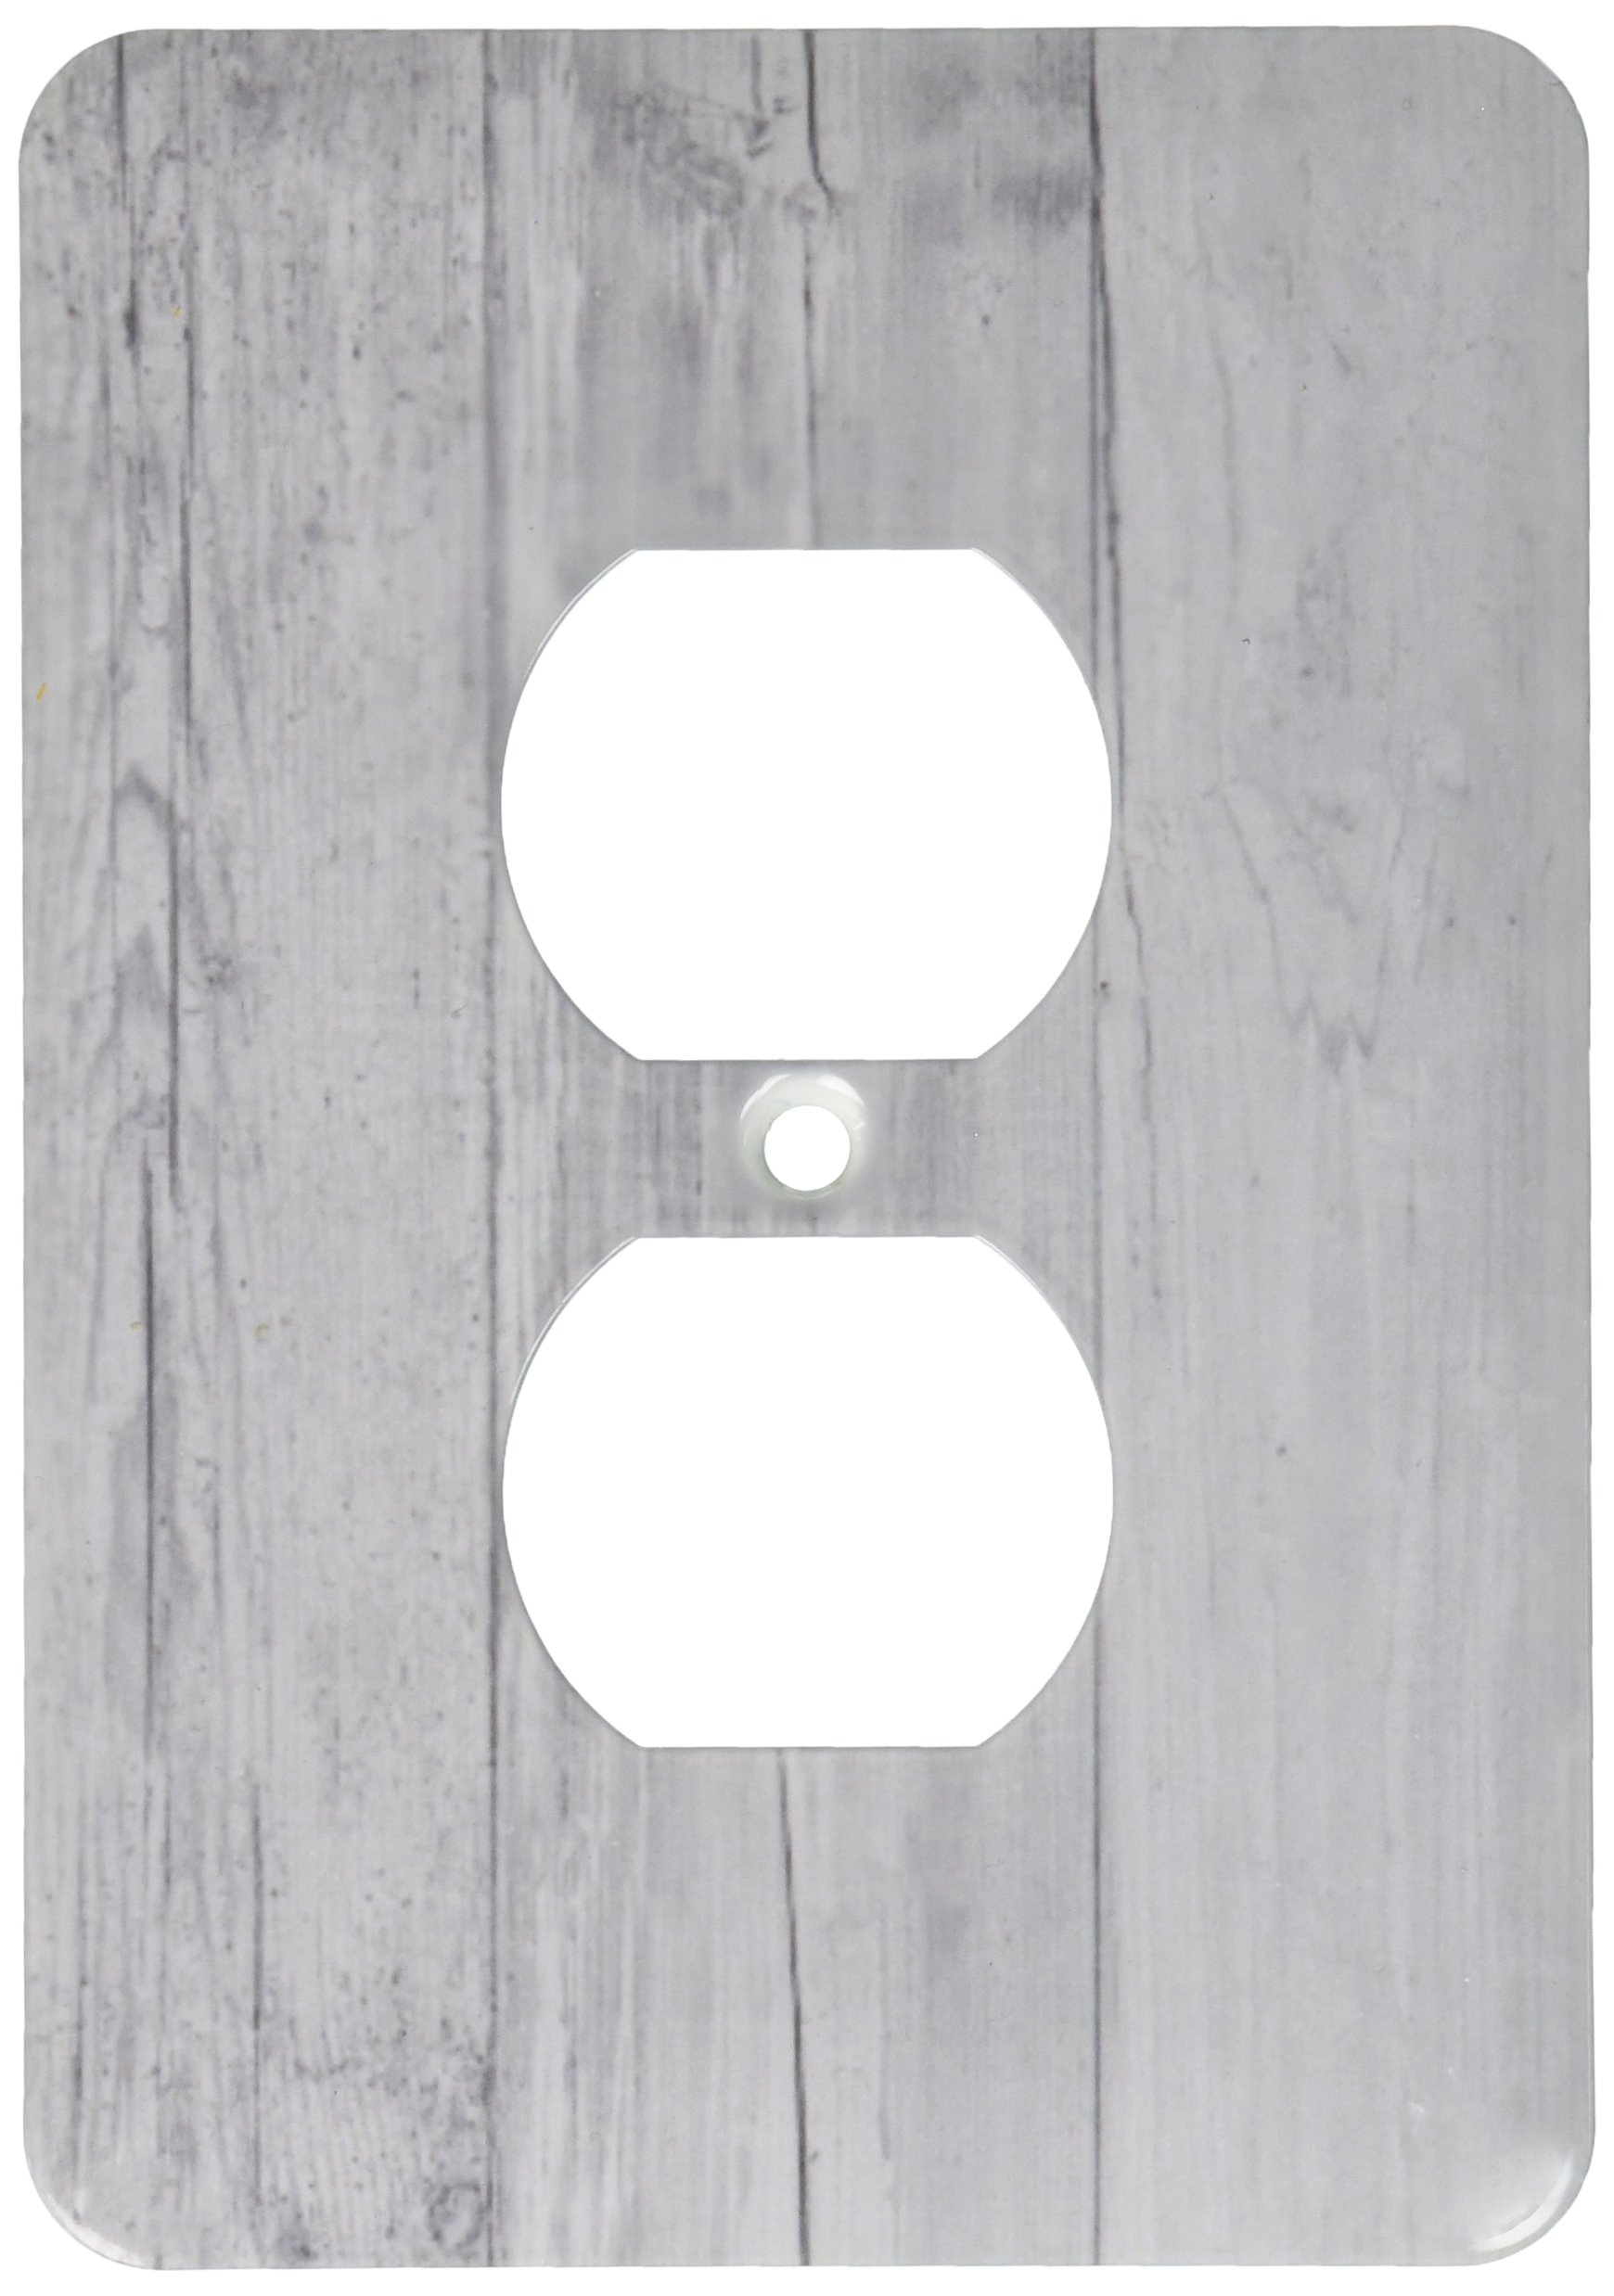 3dRose lsp_203980_6 Print of Country Gray Barn Wood 2 Plug Outlet Cover